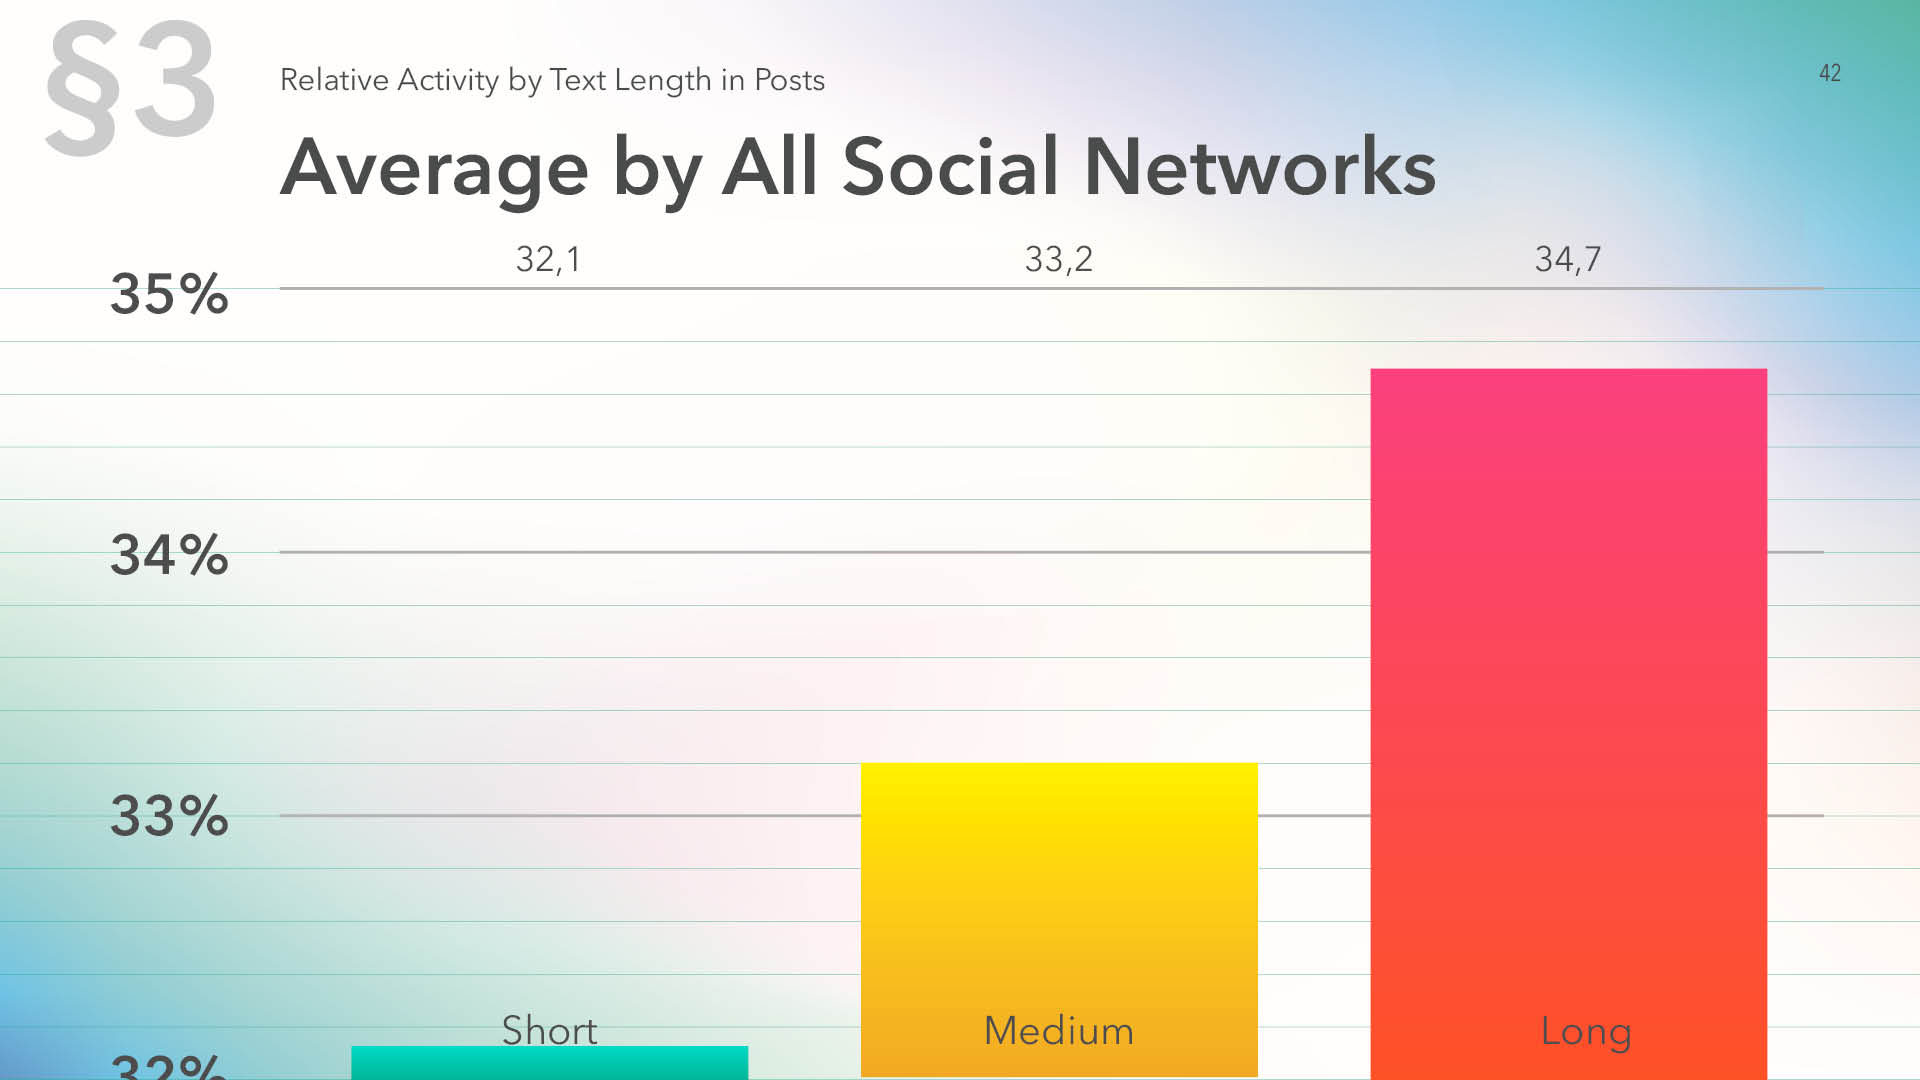 Average relative activity by all Social media by text length in posts